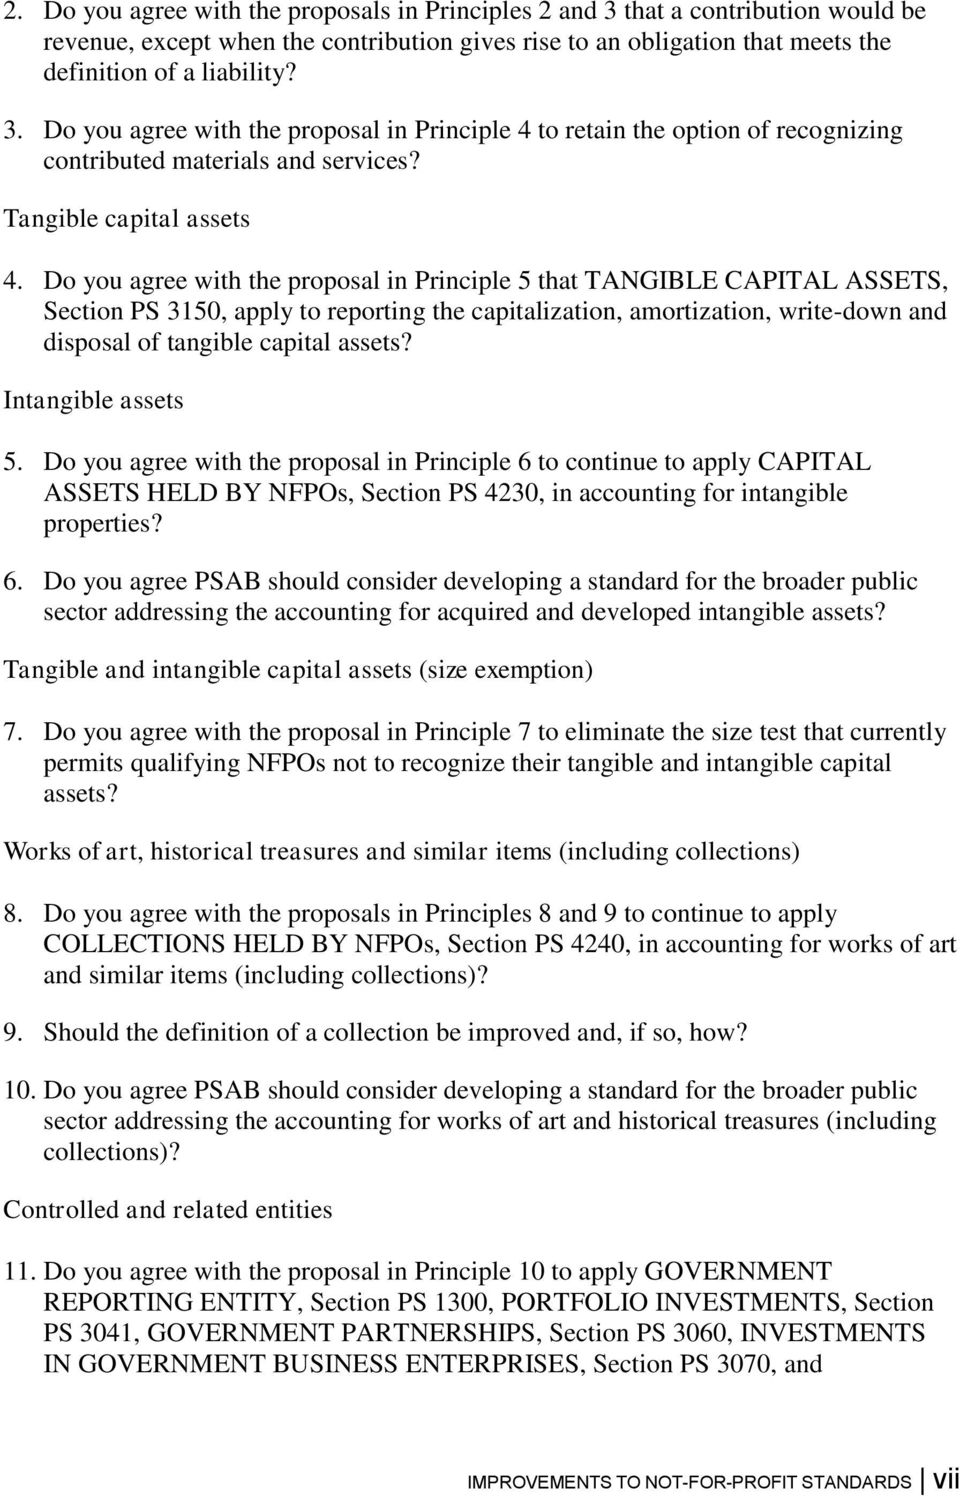 Do you agree with the proposal in Principle 5 that TANGIBLE CAPITAL ASSETS, Section PS 3150, apply to reporting the capitalization, amortization, write-down and disposal of tangible capital assets?